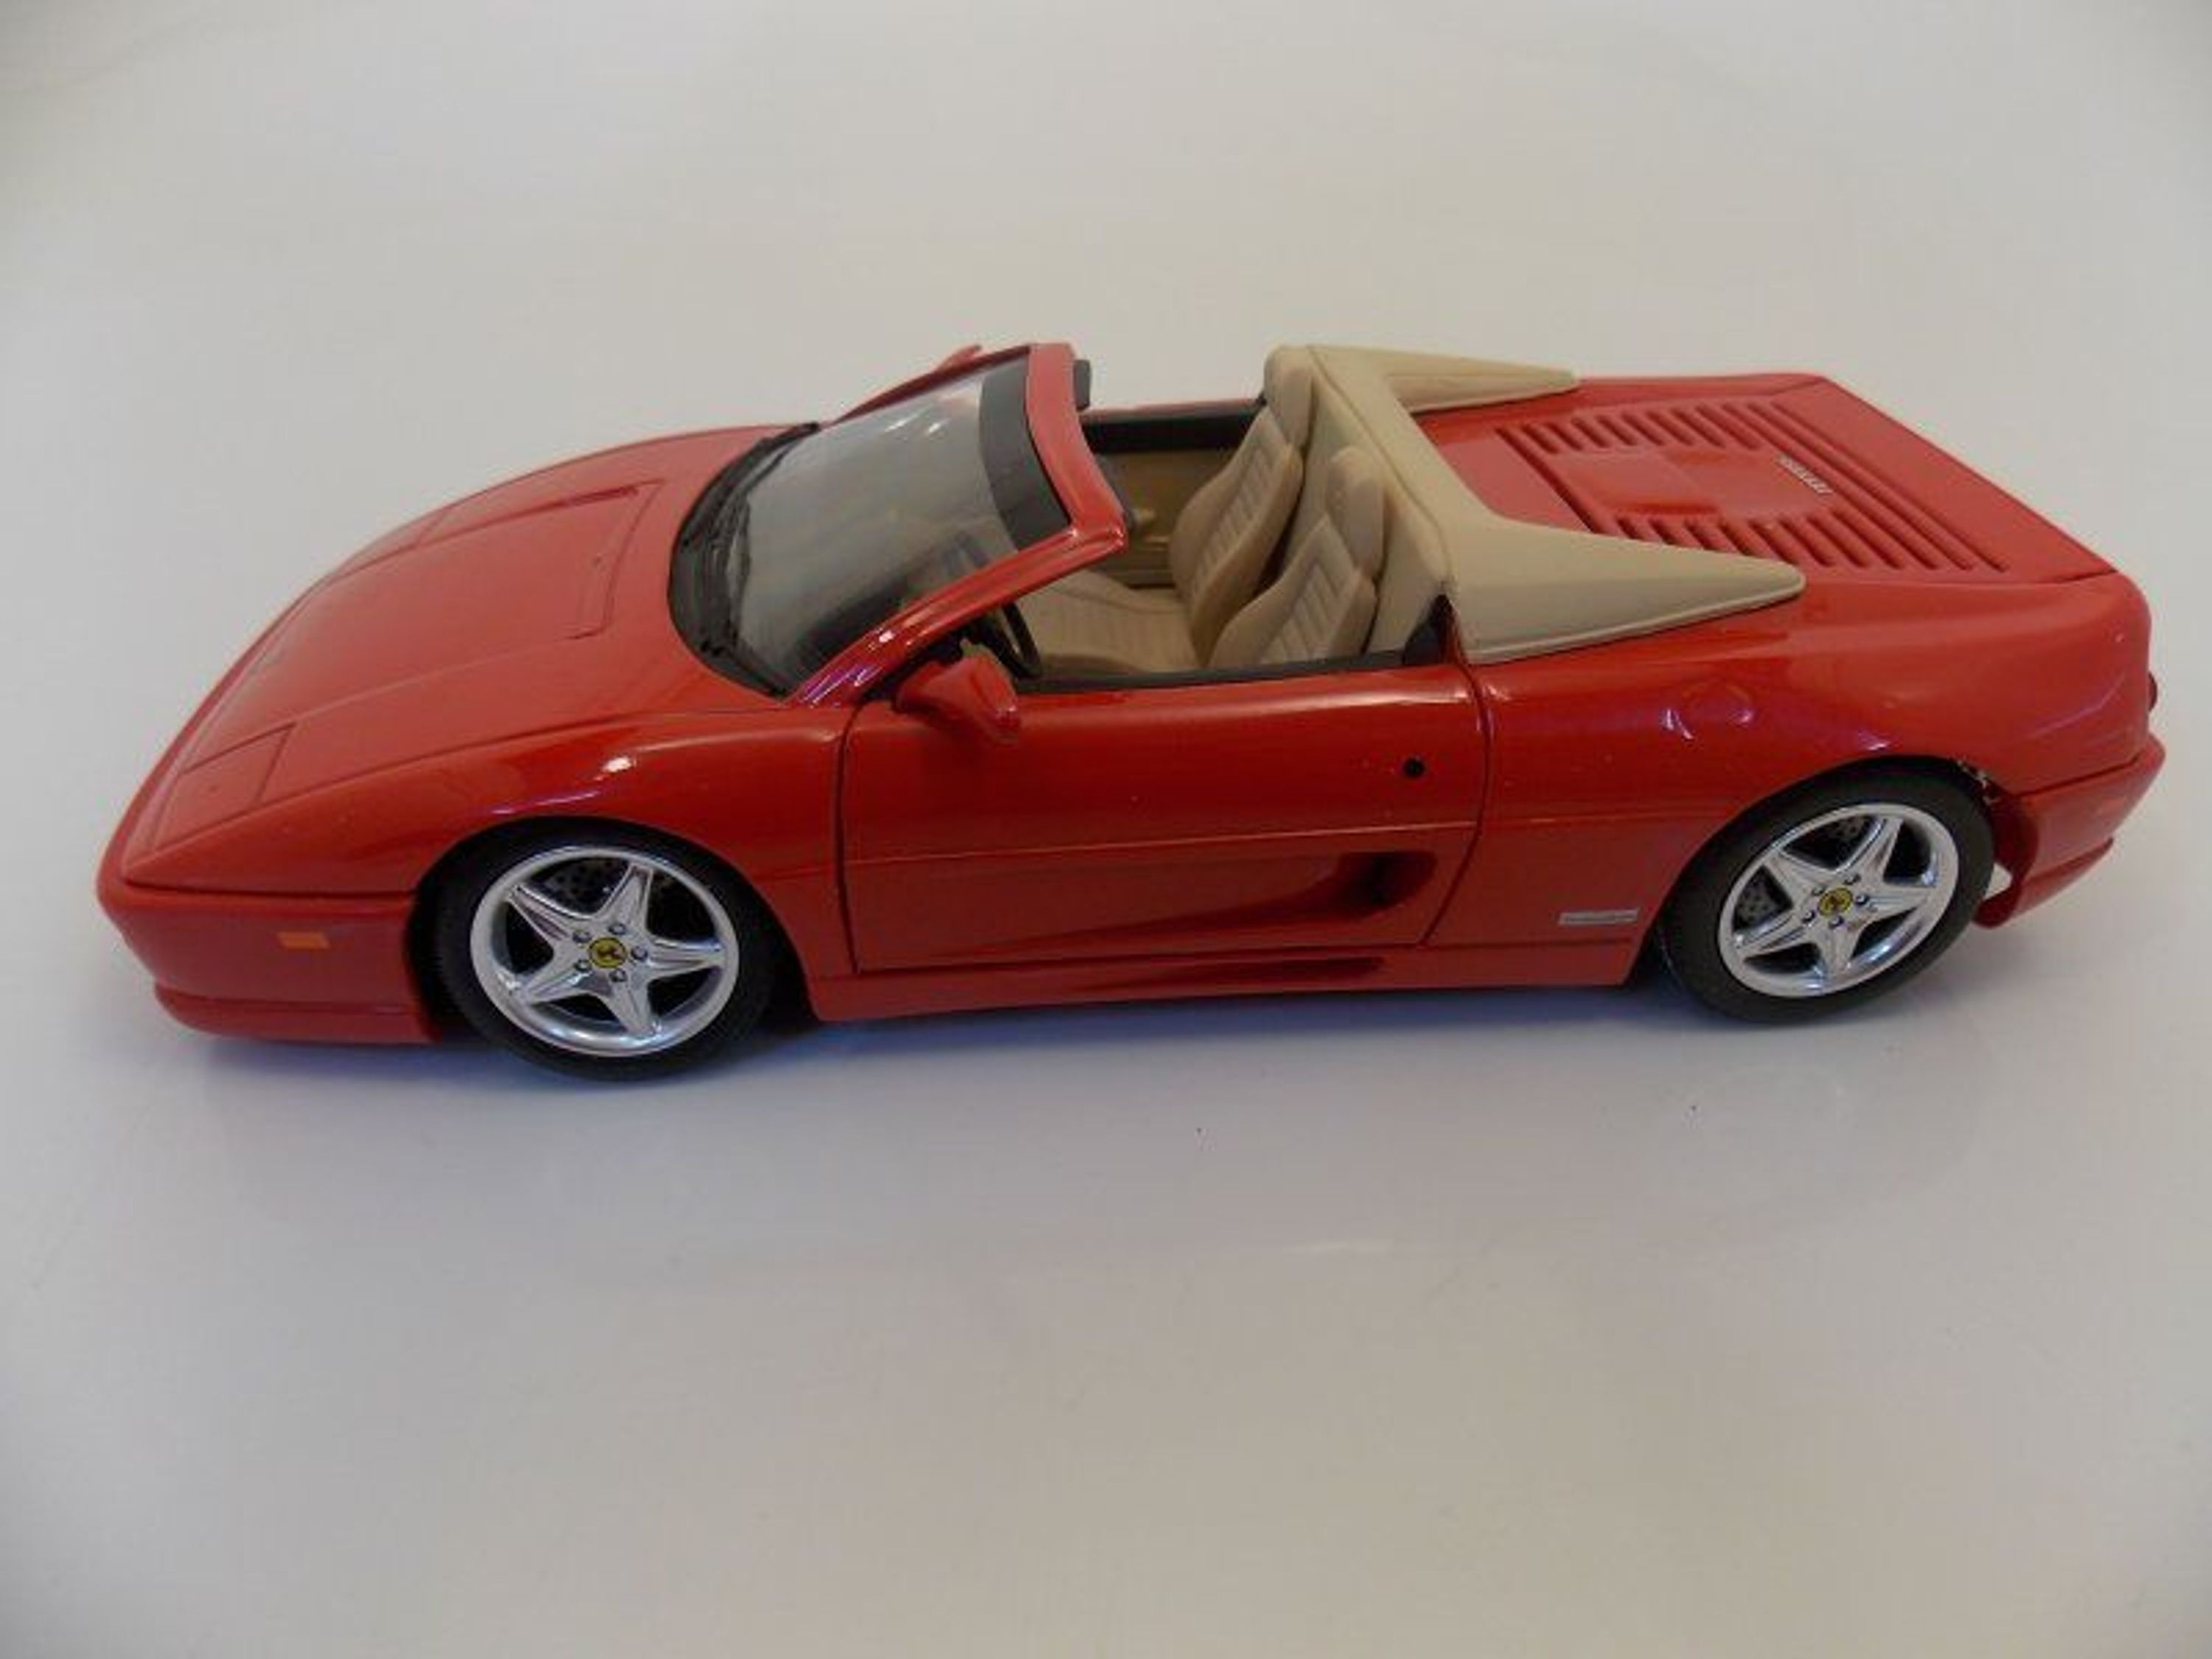 ferrari 355 cabrio farbe rot im massstab 1 18 von hot. Black Bedroom Furniture Sets. Home Design Ideas